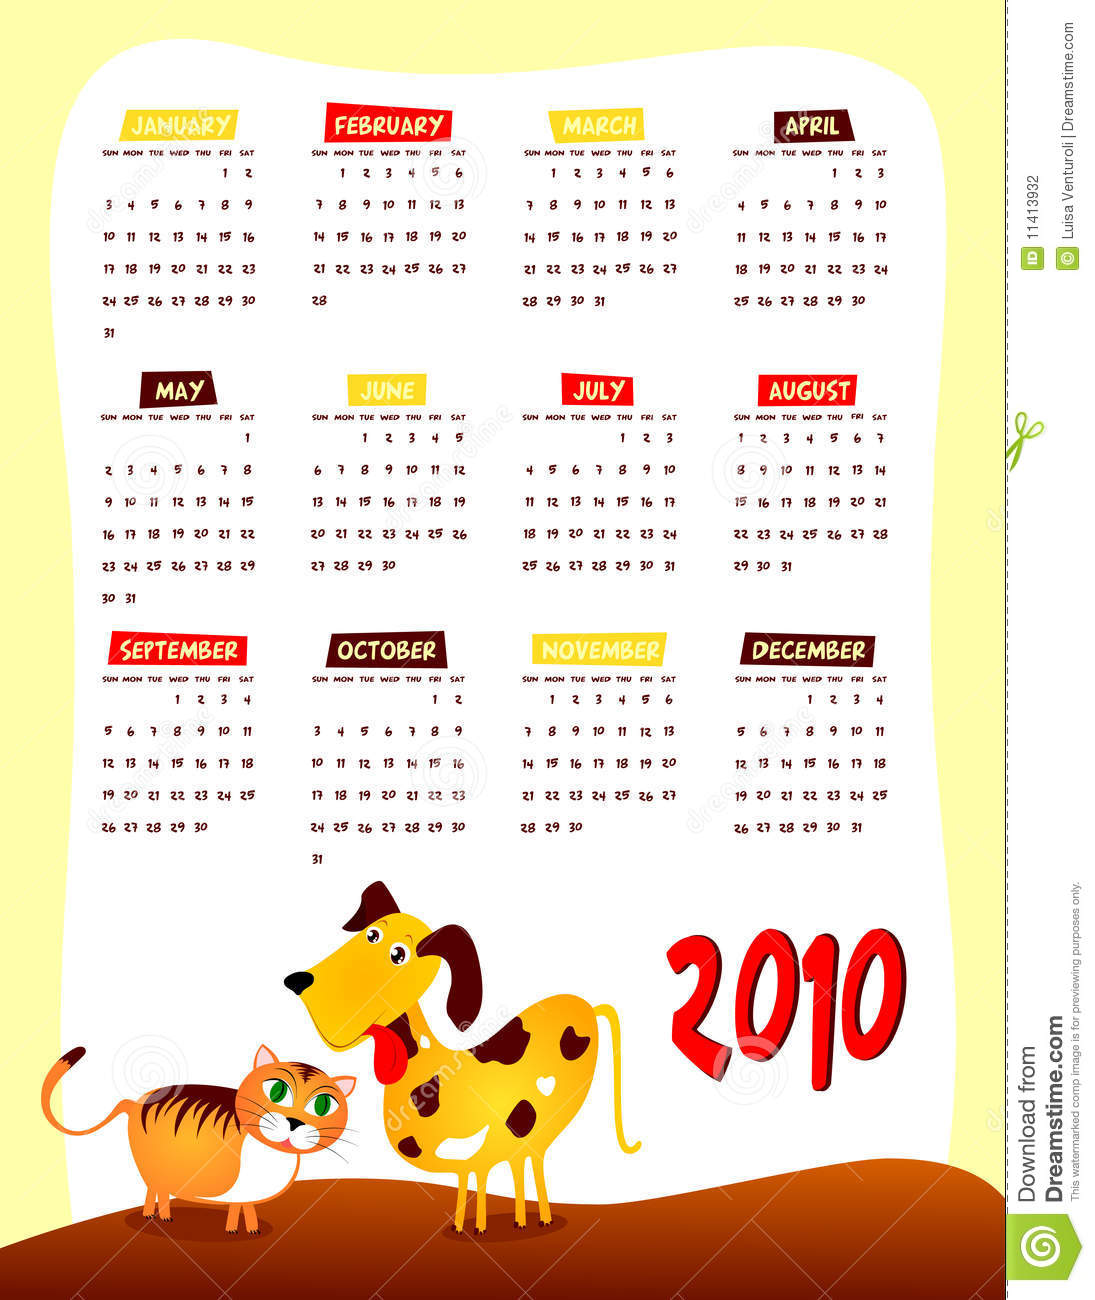 Next Year Calendar : Calendar of next year stock photography image